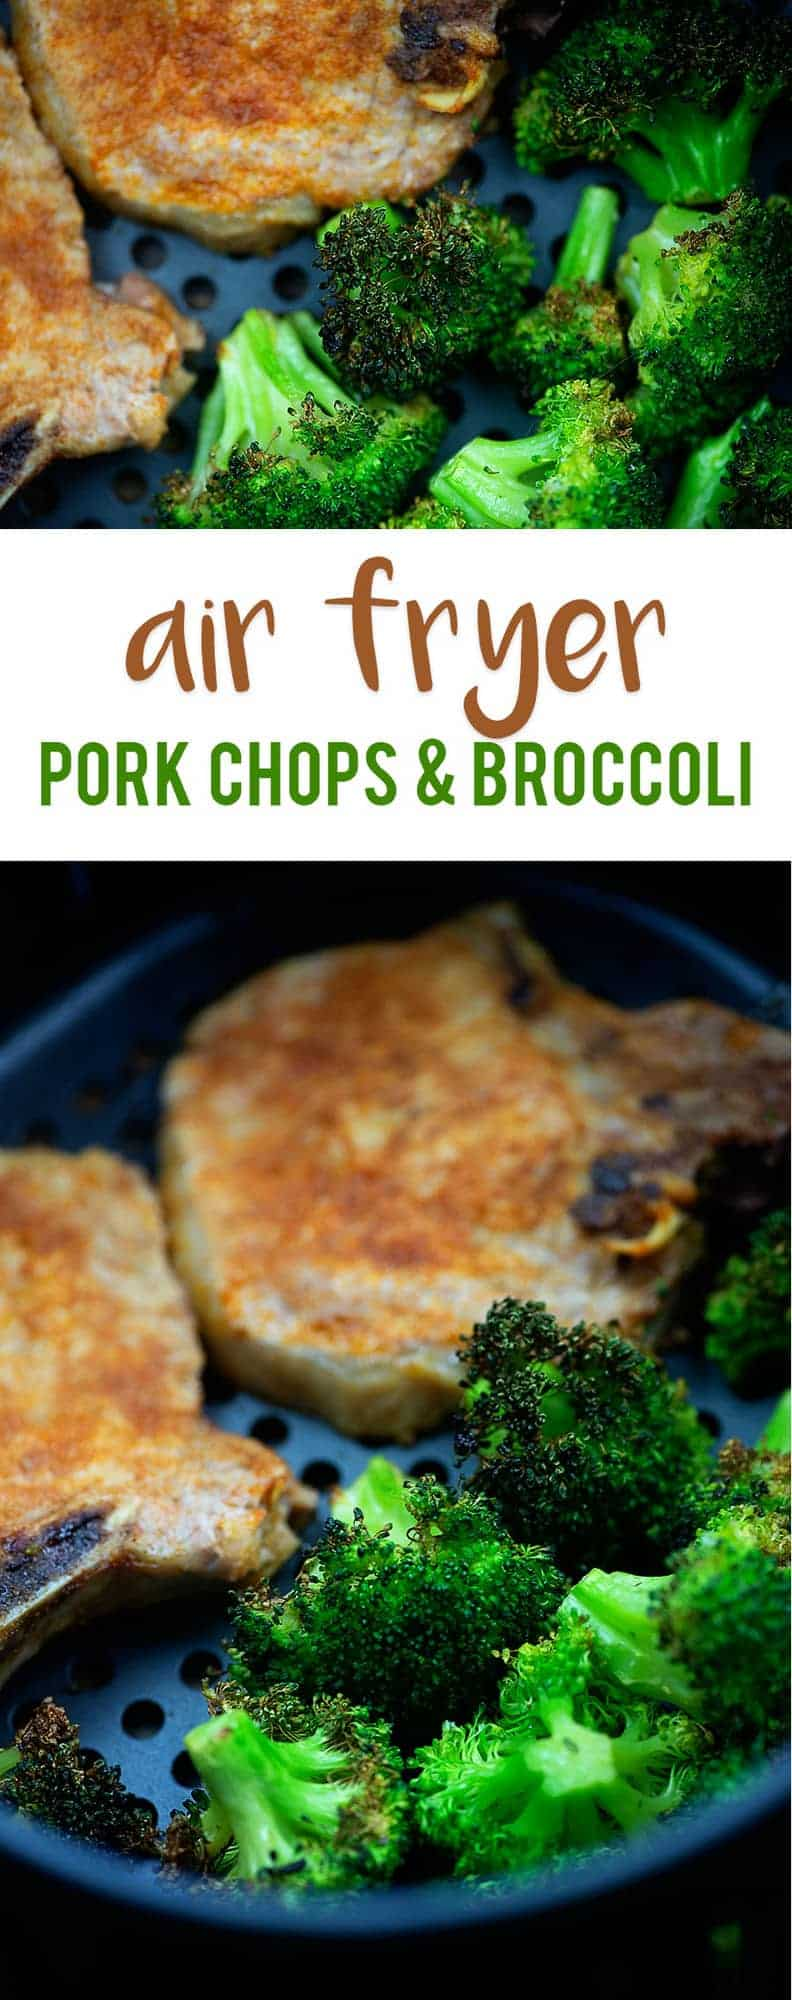 How long do i cook thin pork chops in air fryer